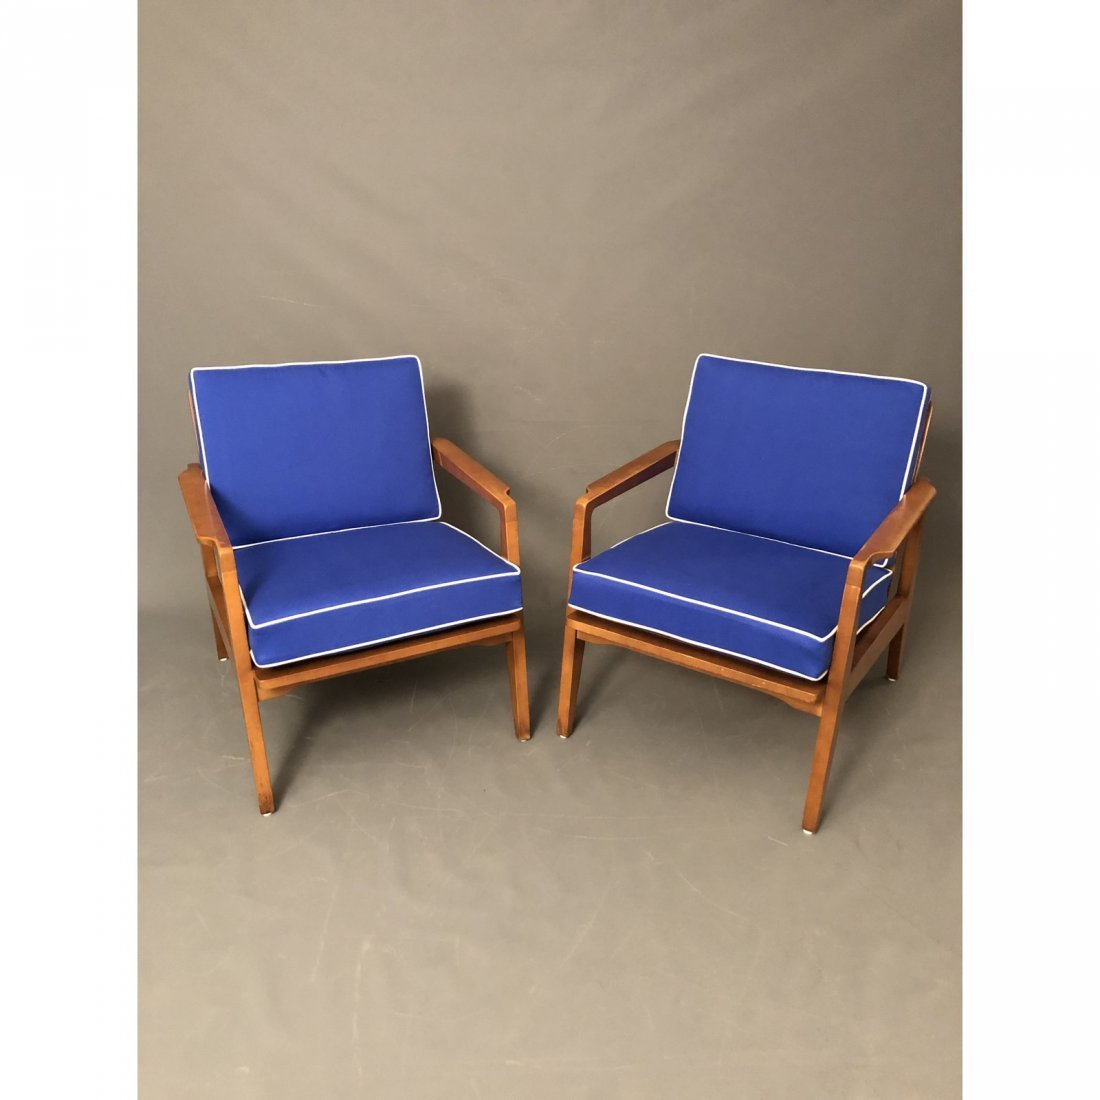 Mid-Century Danish Modern Arm Chairs With Blue Cushions - 2